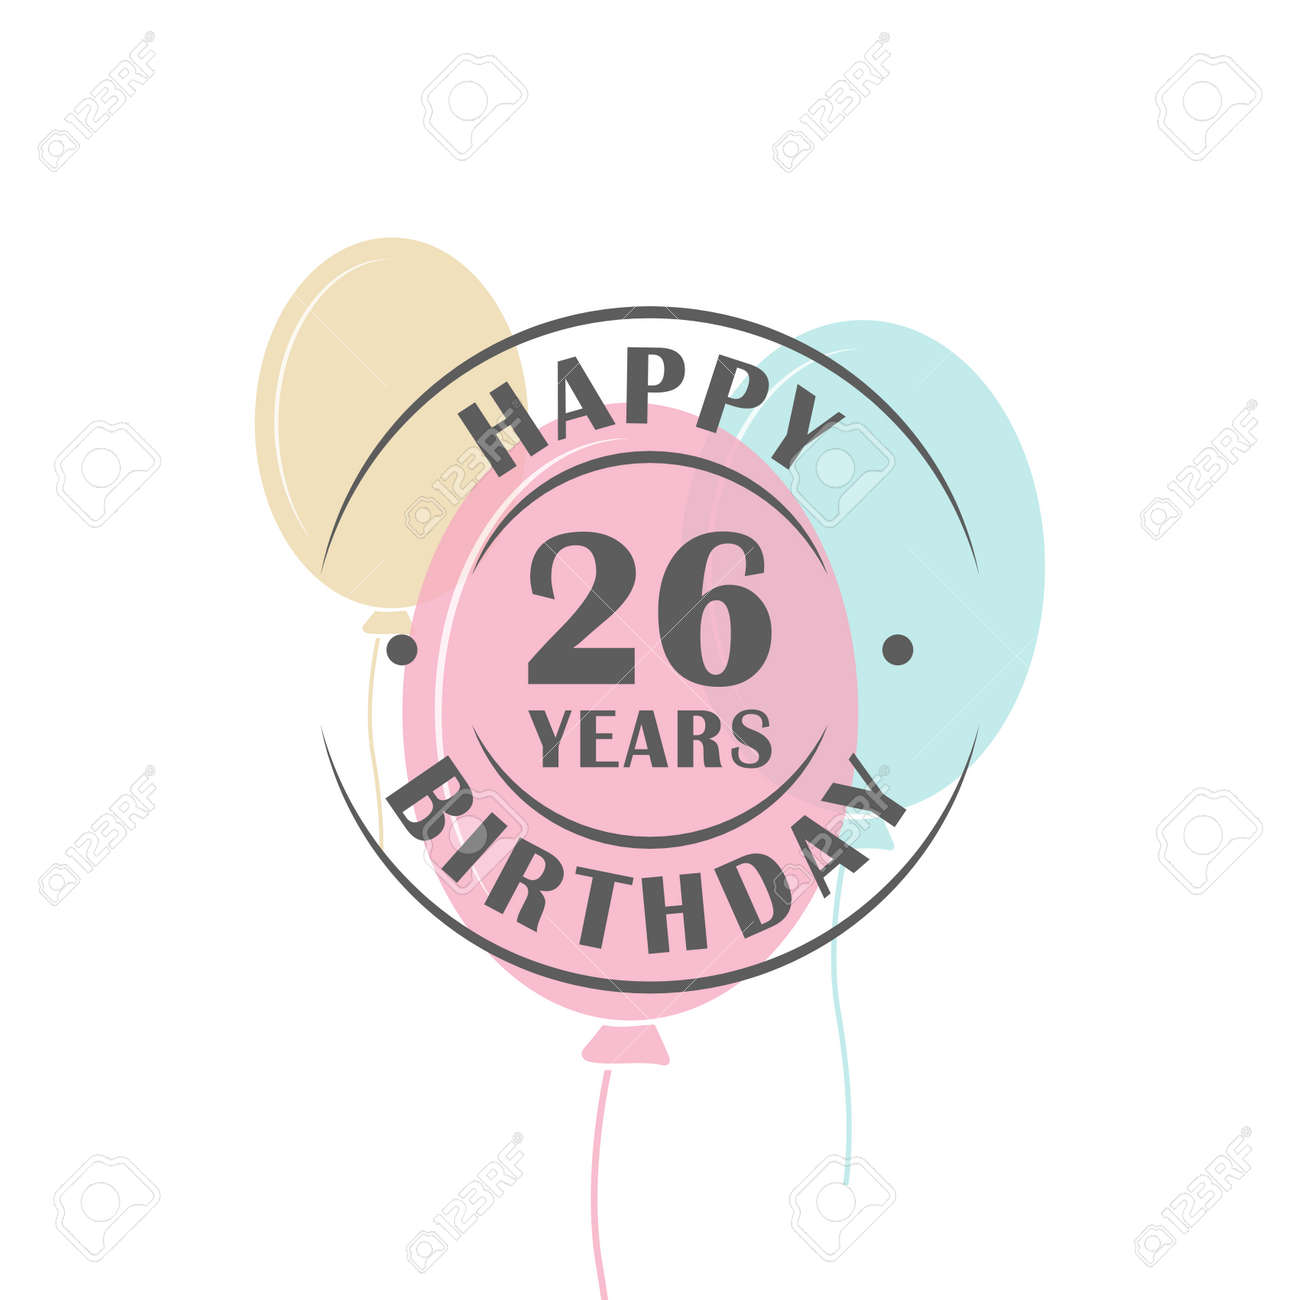 happy birthday 26 years round logo with festive balloons greeting